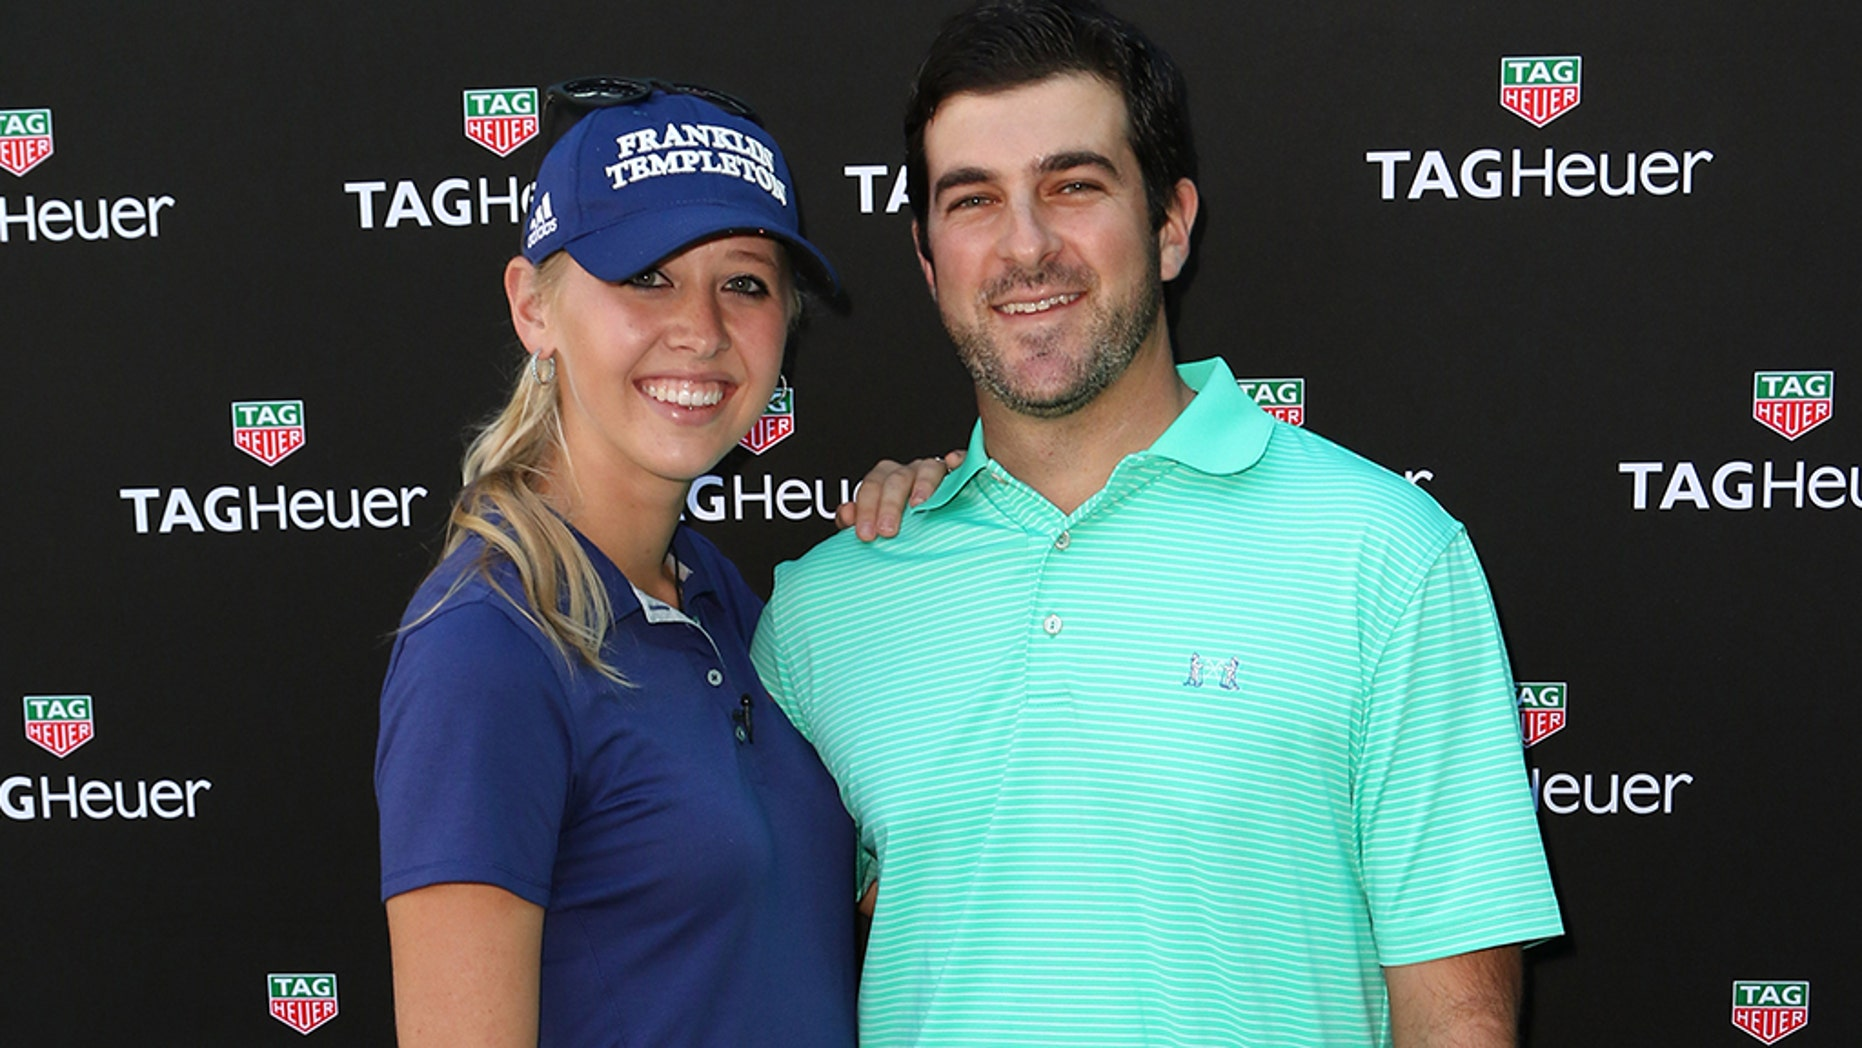 LPGA star Jessica Korda's boyfriend, former pro golfer Johnny DelPrete, is the latest name to be caught in the Florida prostitution solicitation scandal that has ensnared New England Patriots owner Robert Kraft, according to reports. (Alexander Tamargo/Getty Images for Tag Heuer)